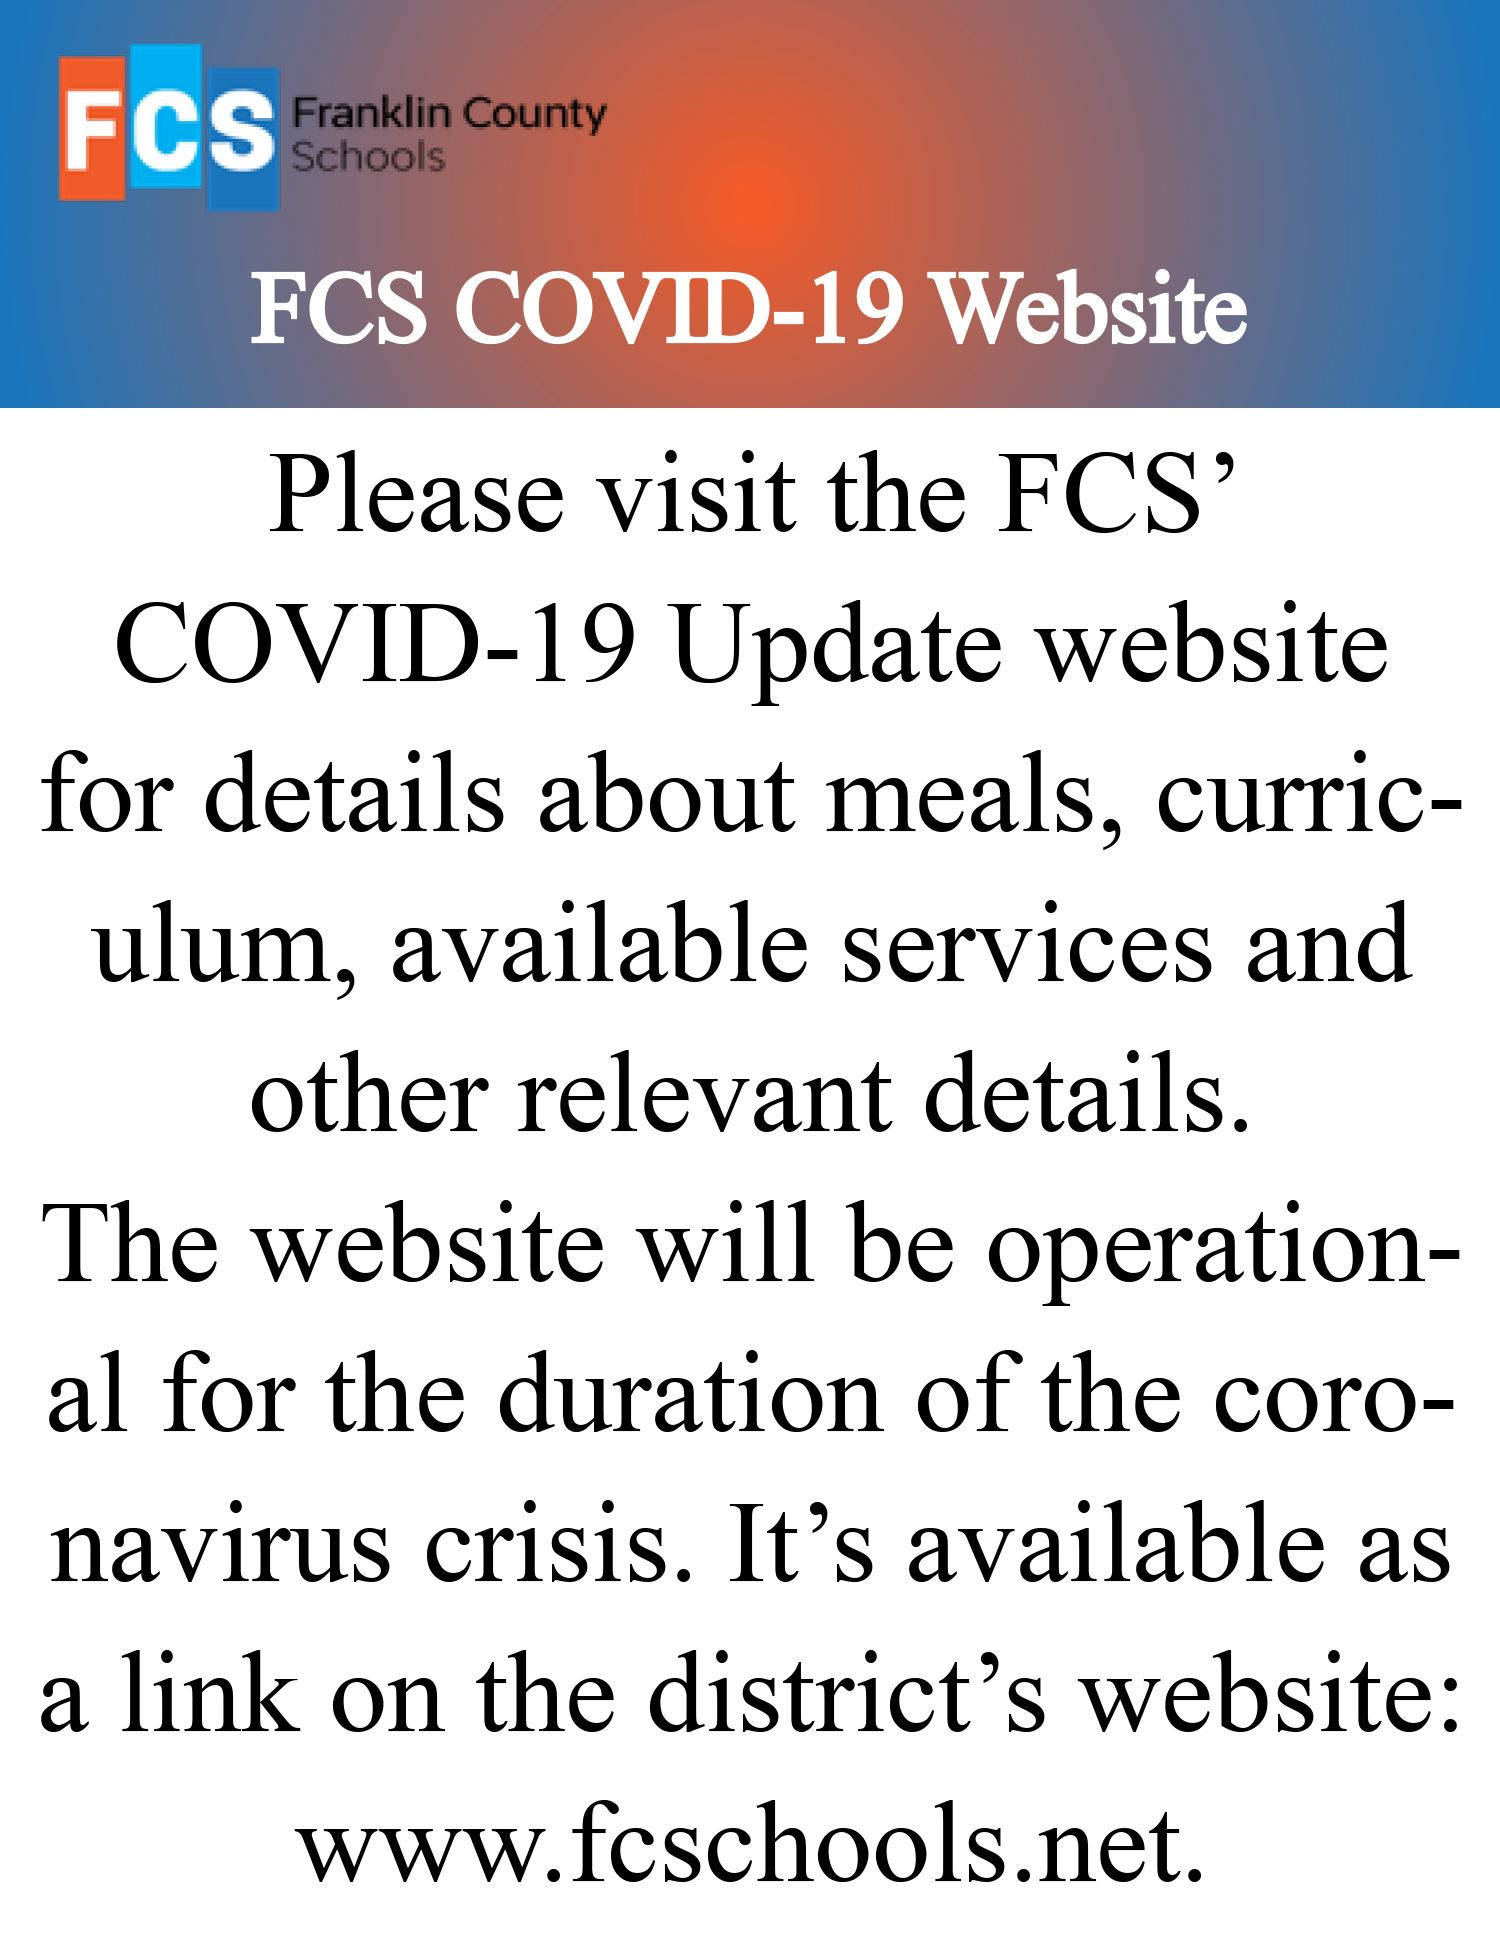 FCS' COVID-19 Updates Website